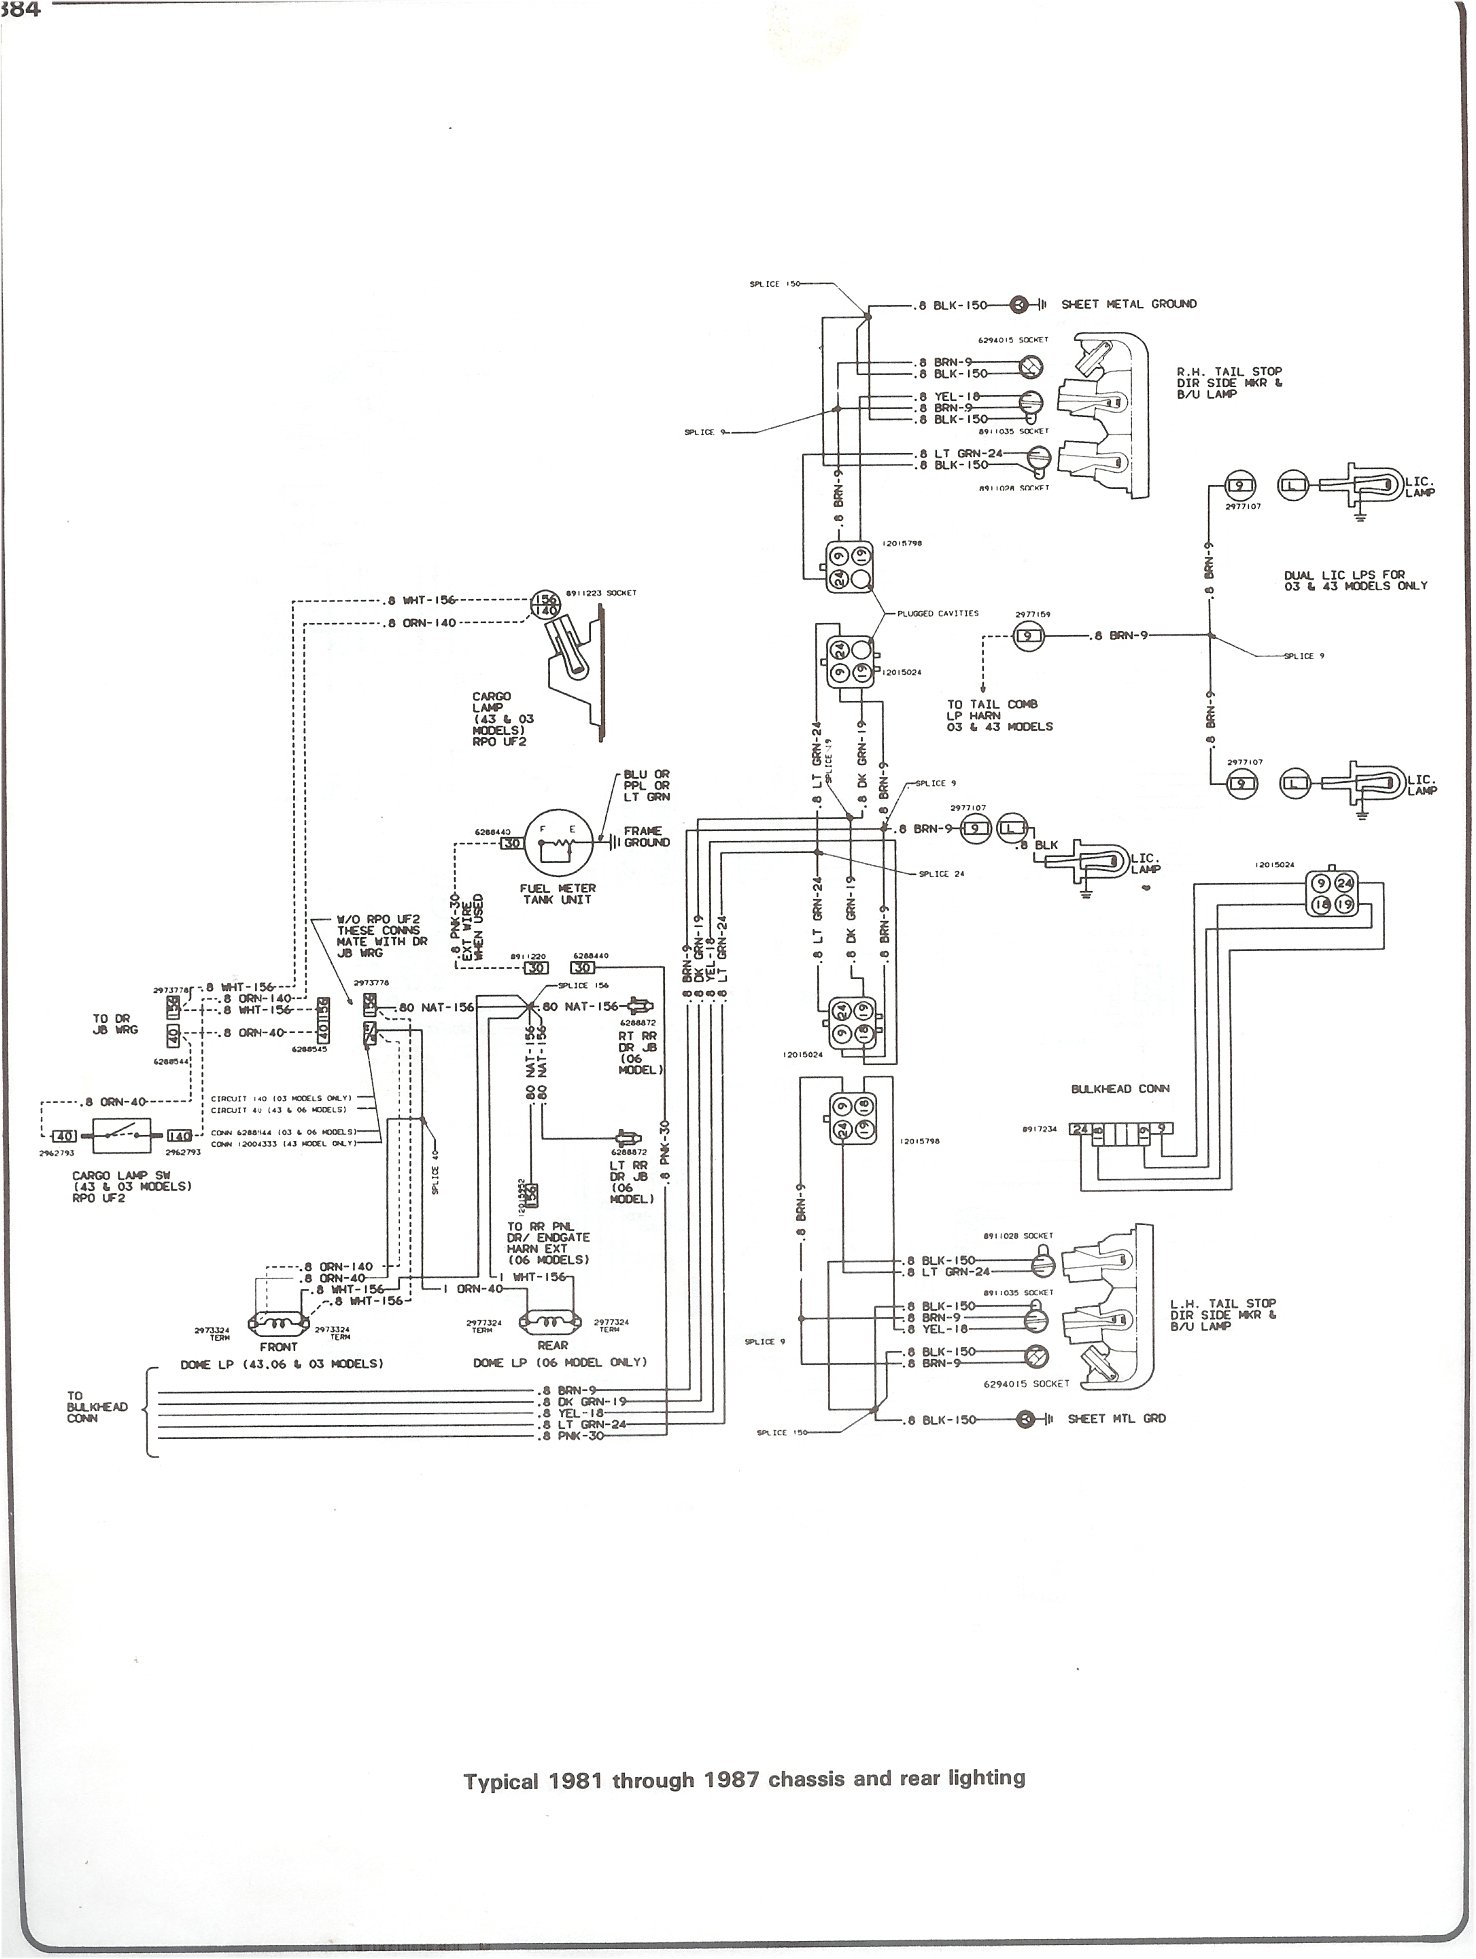 81 87_chass_rr_light wiring diagram for chevy c10 1981 to 1987 readingrat net 1987 chevy wiring diagram at gsmportal.co